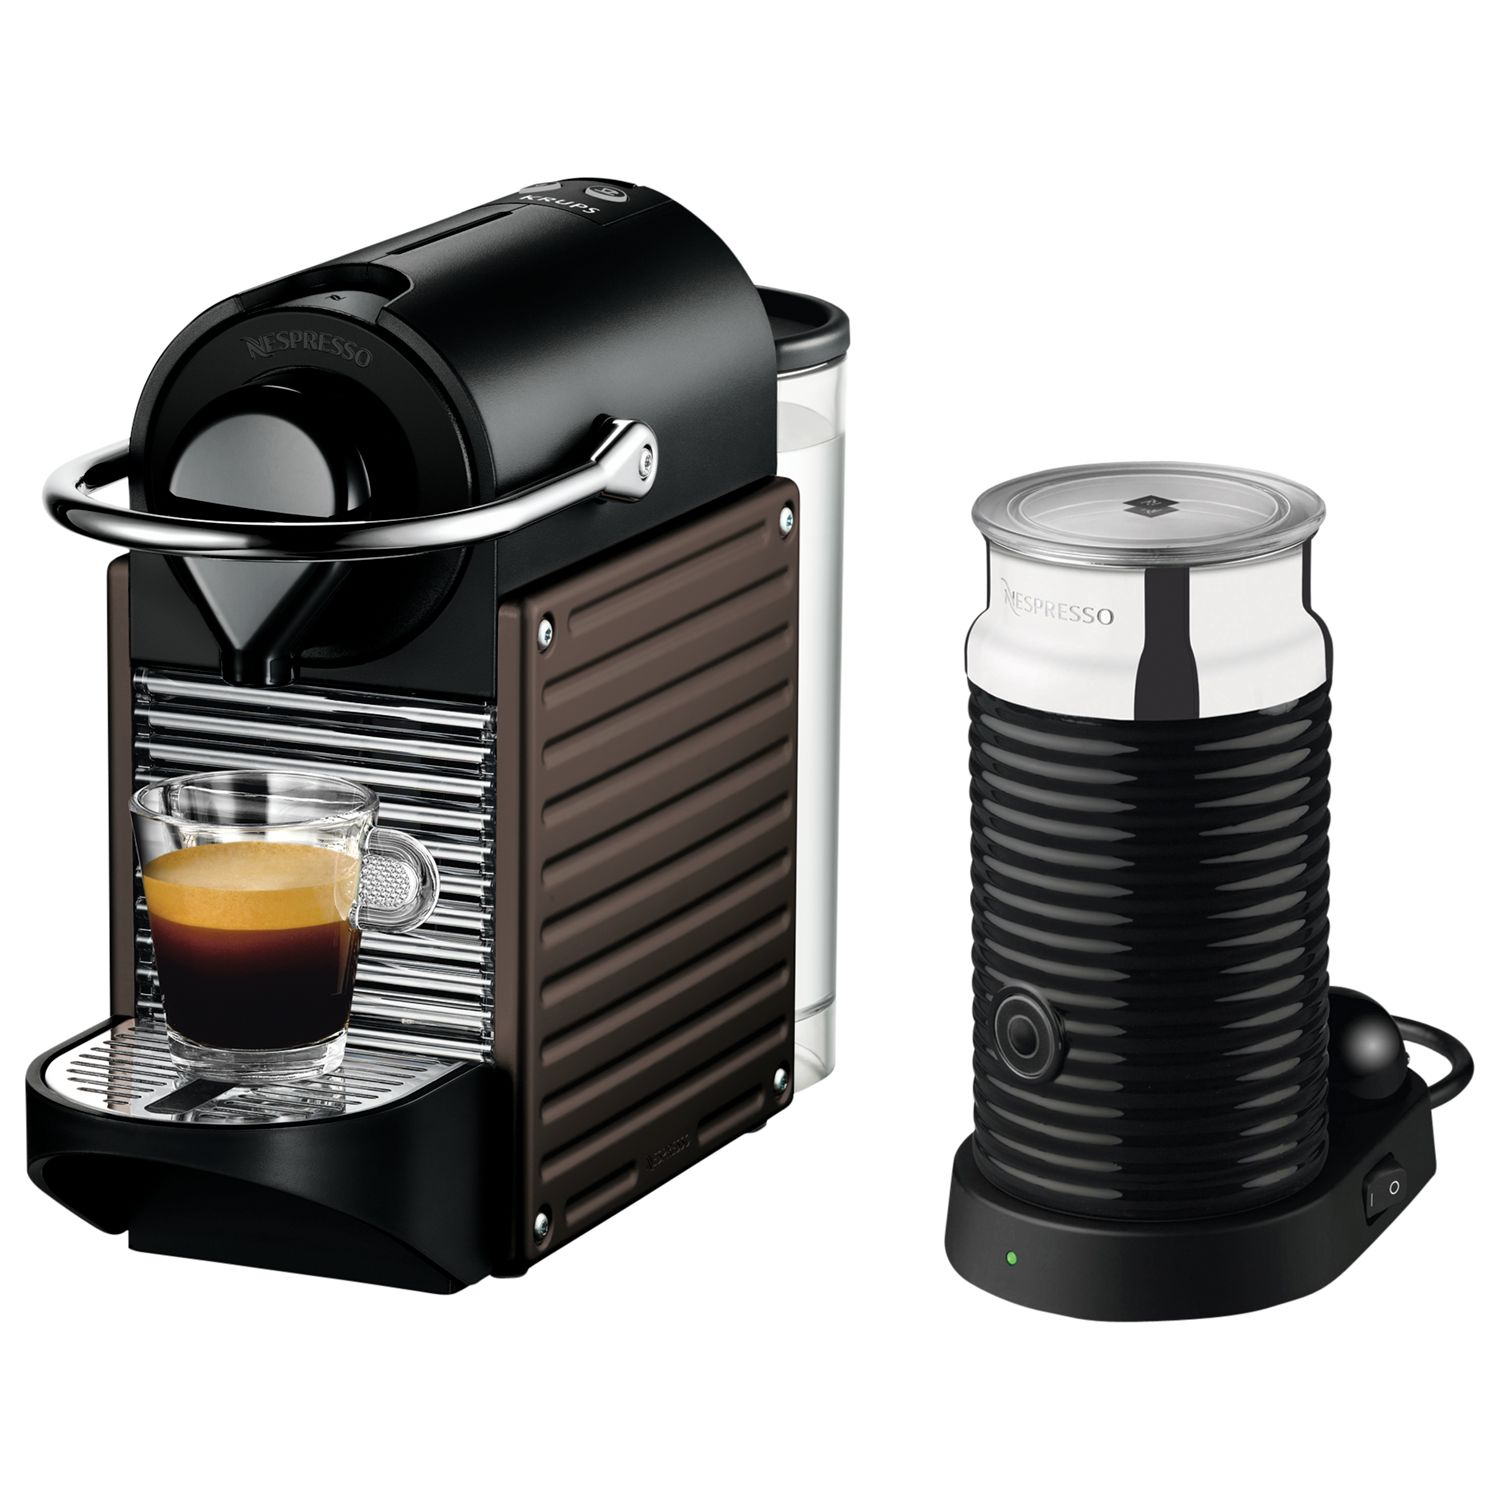 Krups Coffee Maker John Lewis : Buy Nespresso Pixie Automatic Coffee Machine and Aeroccino by KRUPS John Lewis